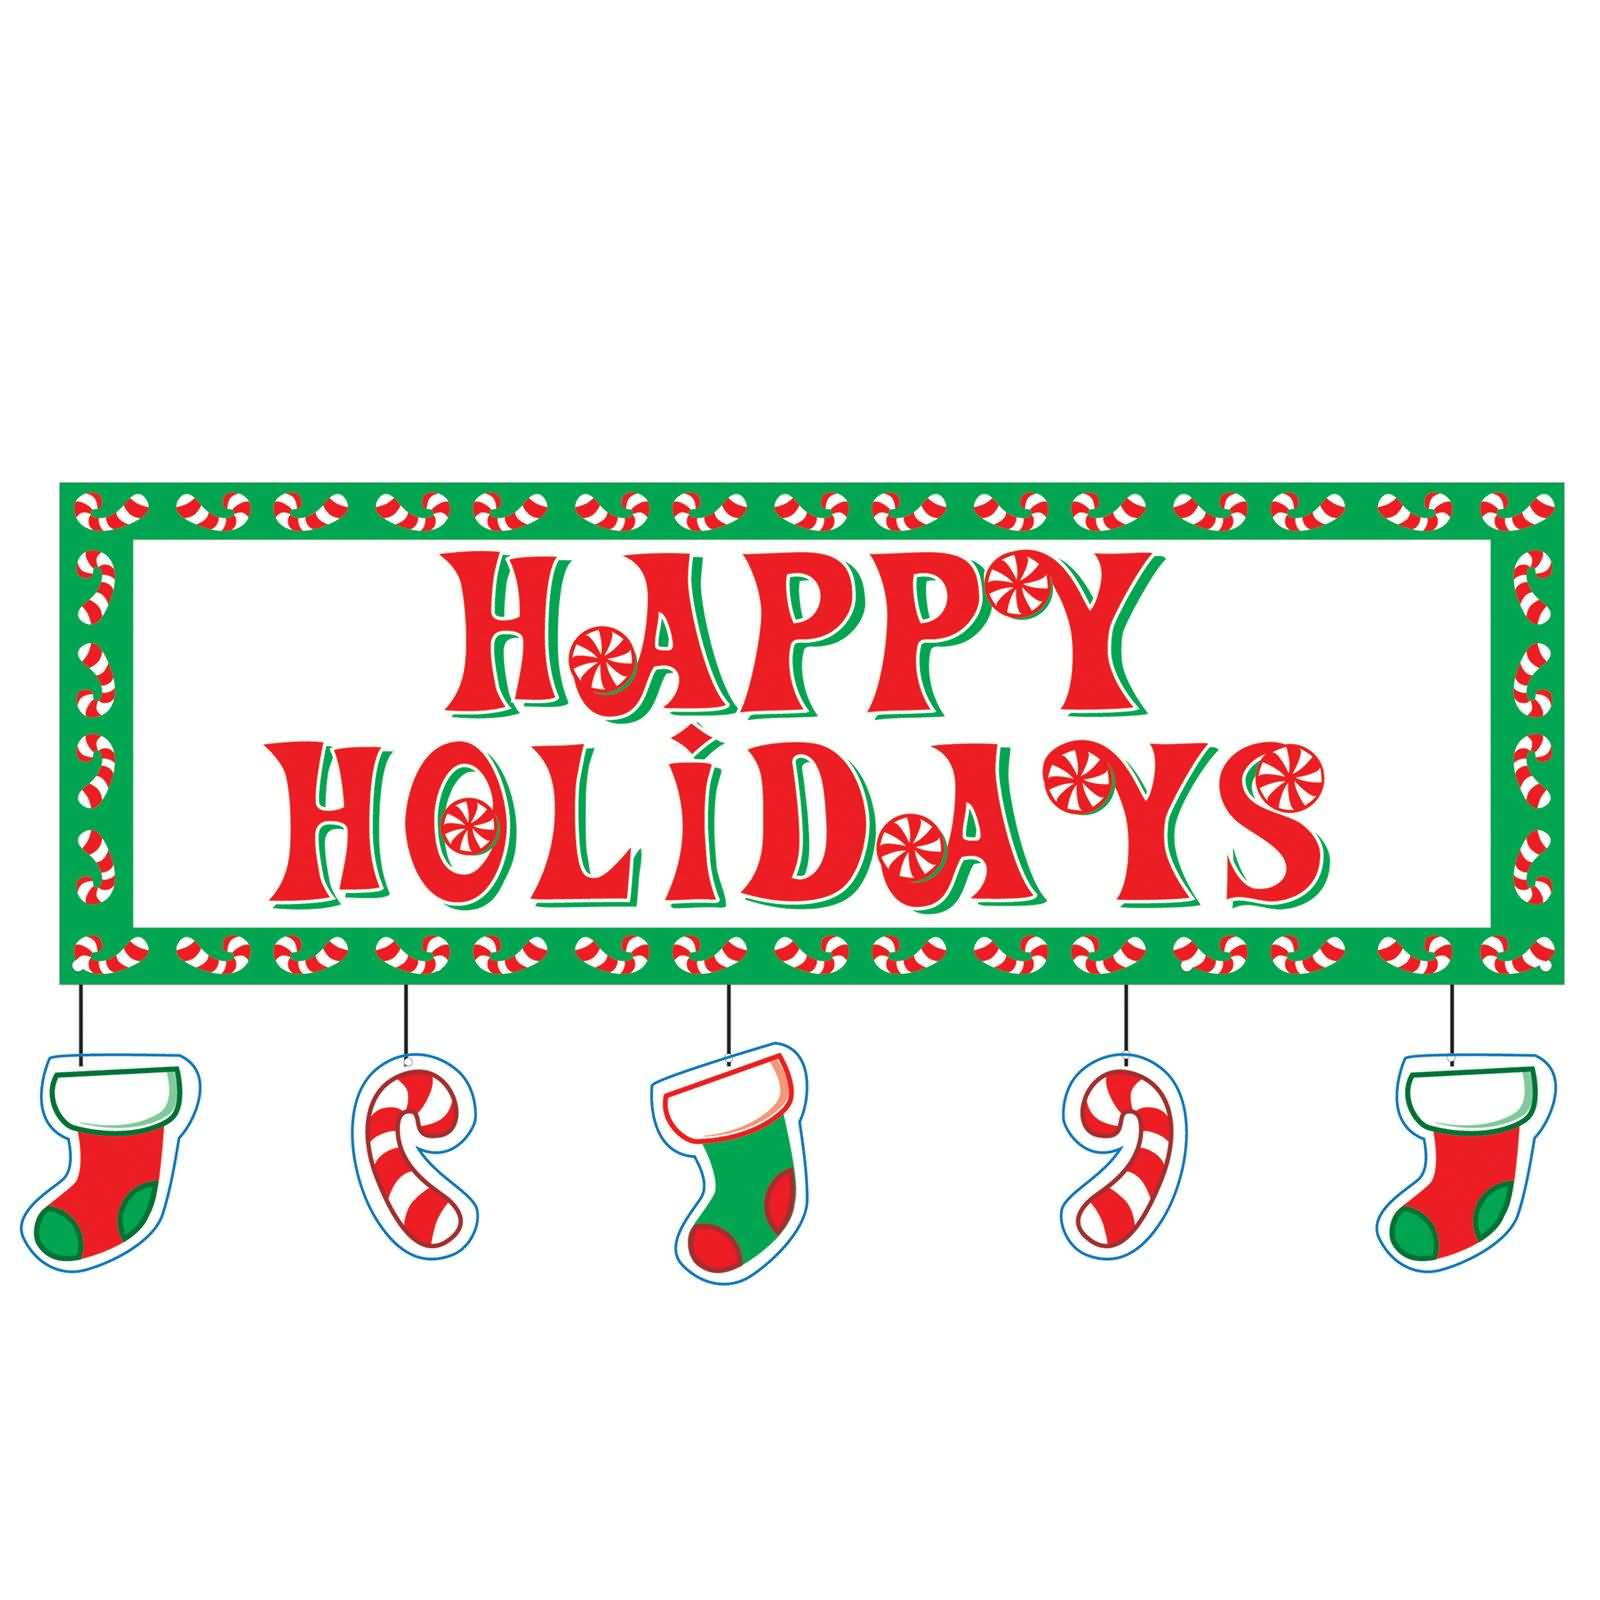 happy holidays clipart rh askideas com happy holidays pictures free clip art happy holidays pictures free clip art